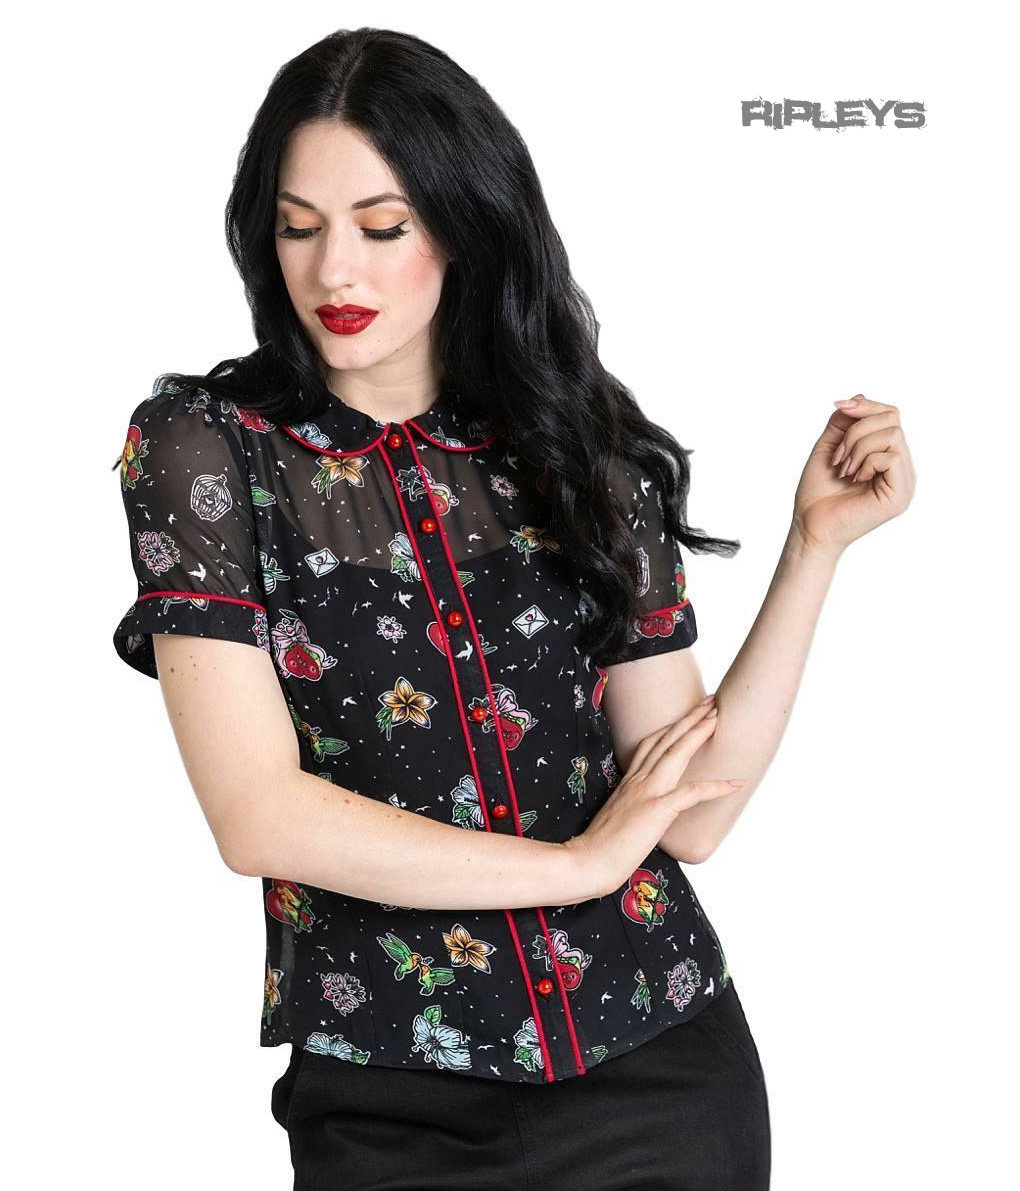 Hell-Bunny-Shirt-Top-Black-LOVEBIRD-Blouse-Retro-Vintage-Flowers-All-Sizes thumbnail 6